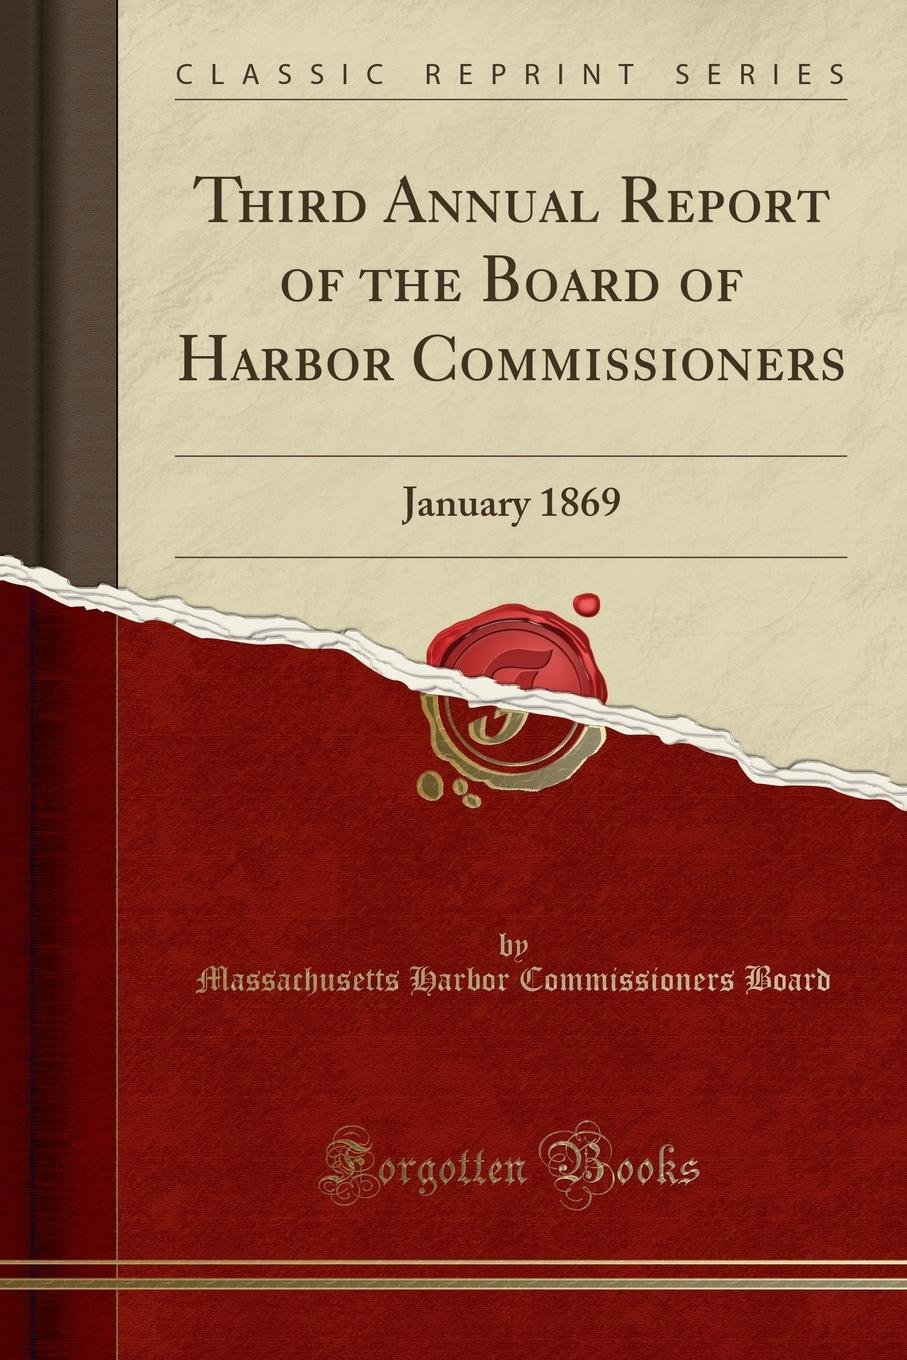 Third Annual Report of the Board of Harbor Commissioners: January 1869 (Classic Reprint) ebook